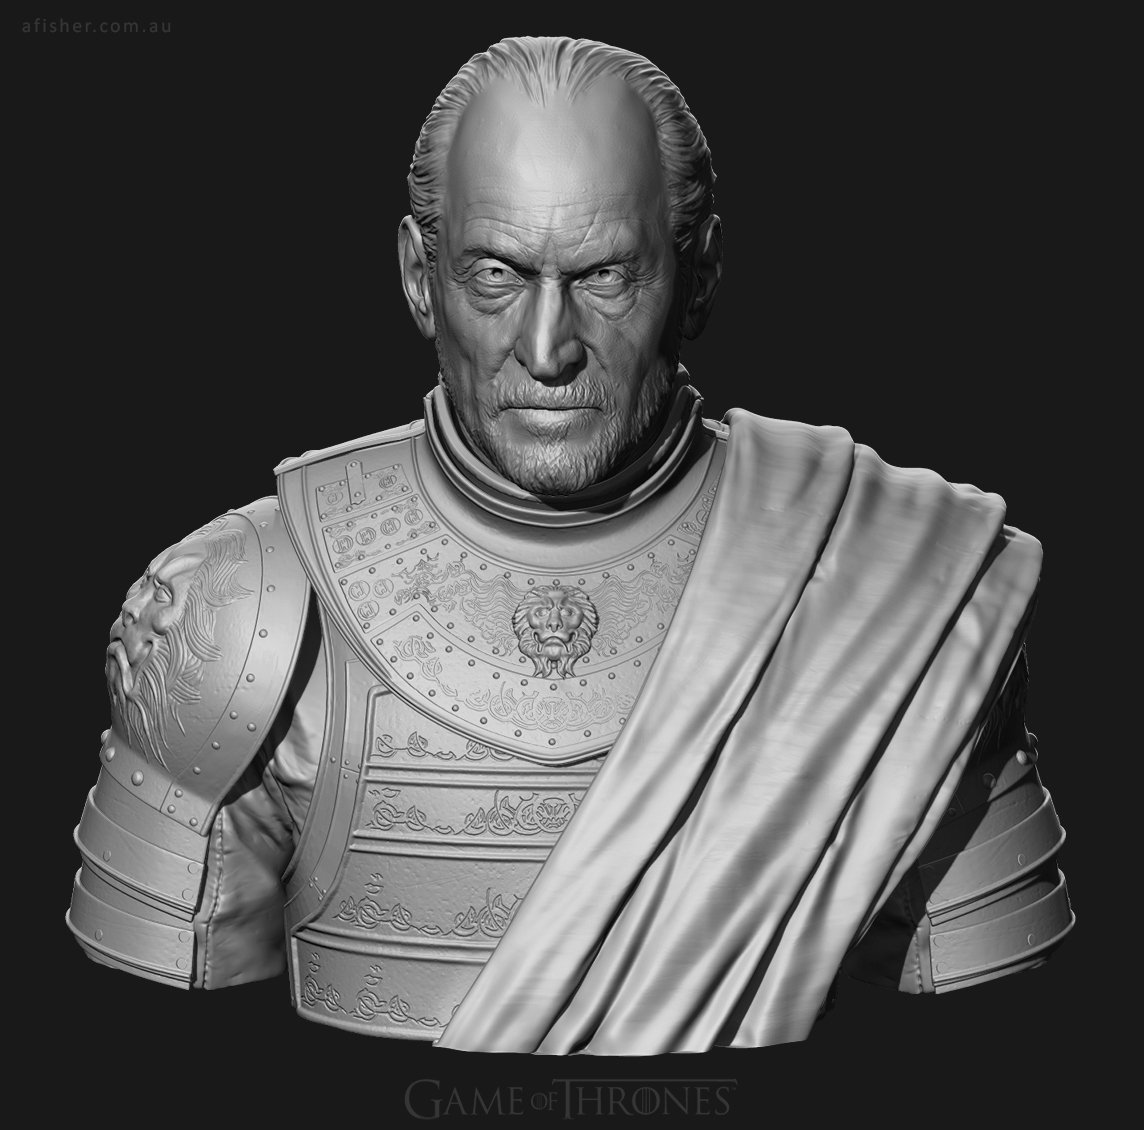 Afisher tywin zb